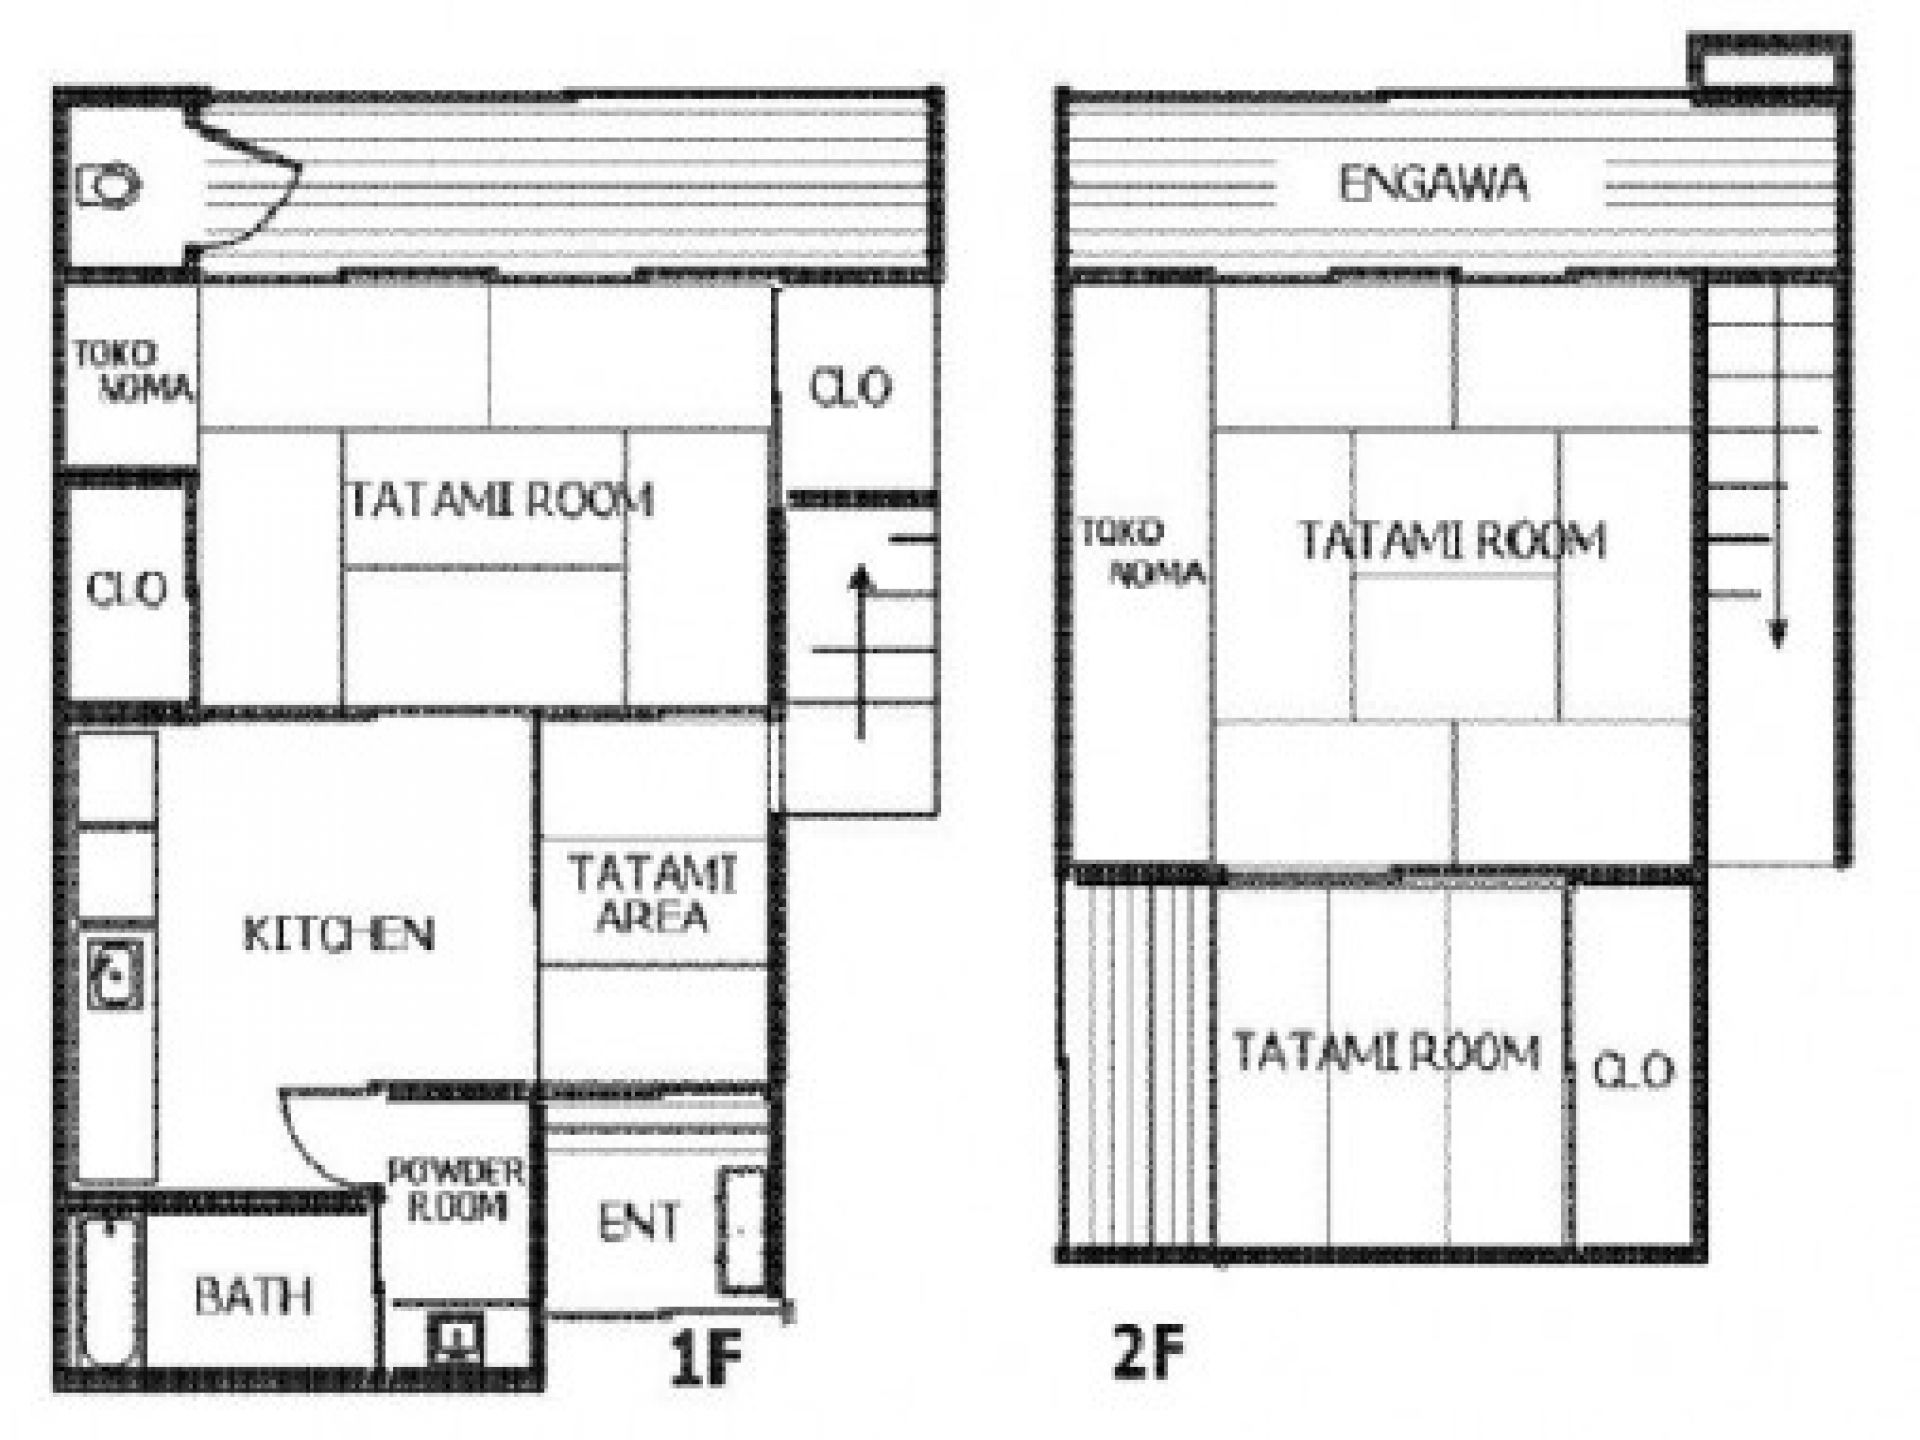 TRADITIONAL JAPANESE MANSION FLOOR PLANS Home Decoration